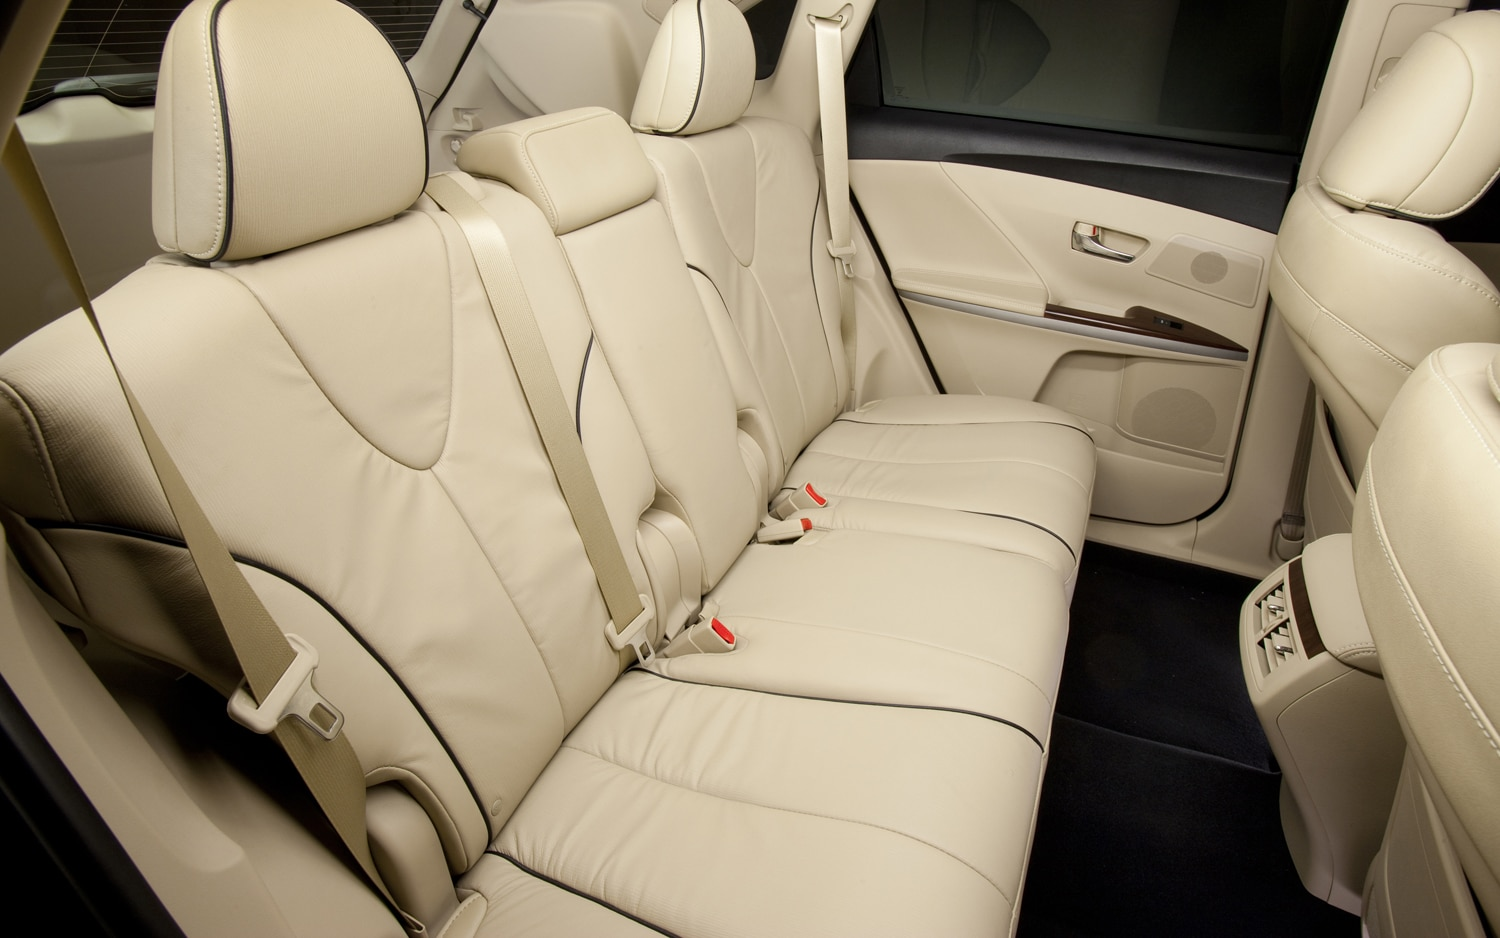 2013 Toyota Venza Rear Seating